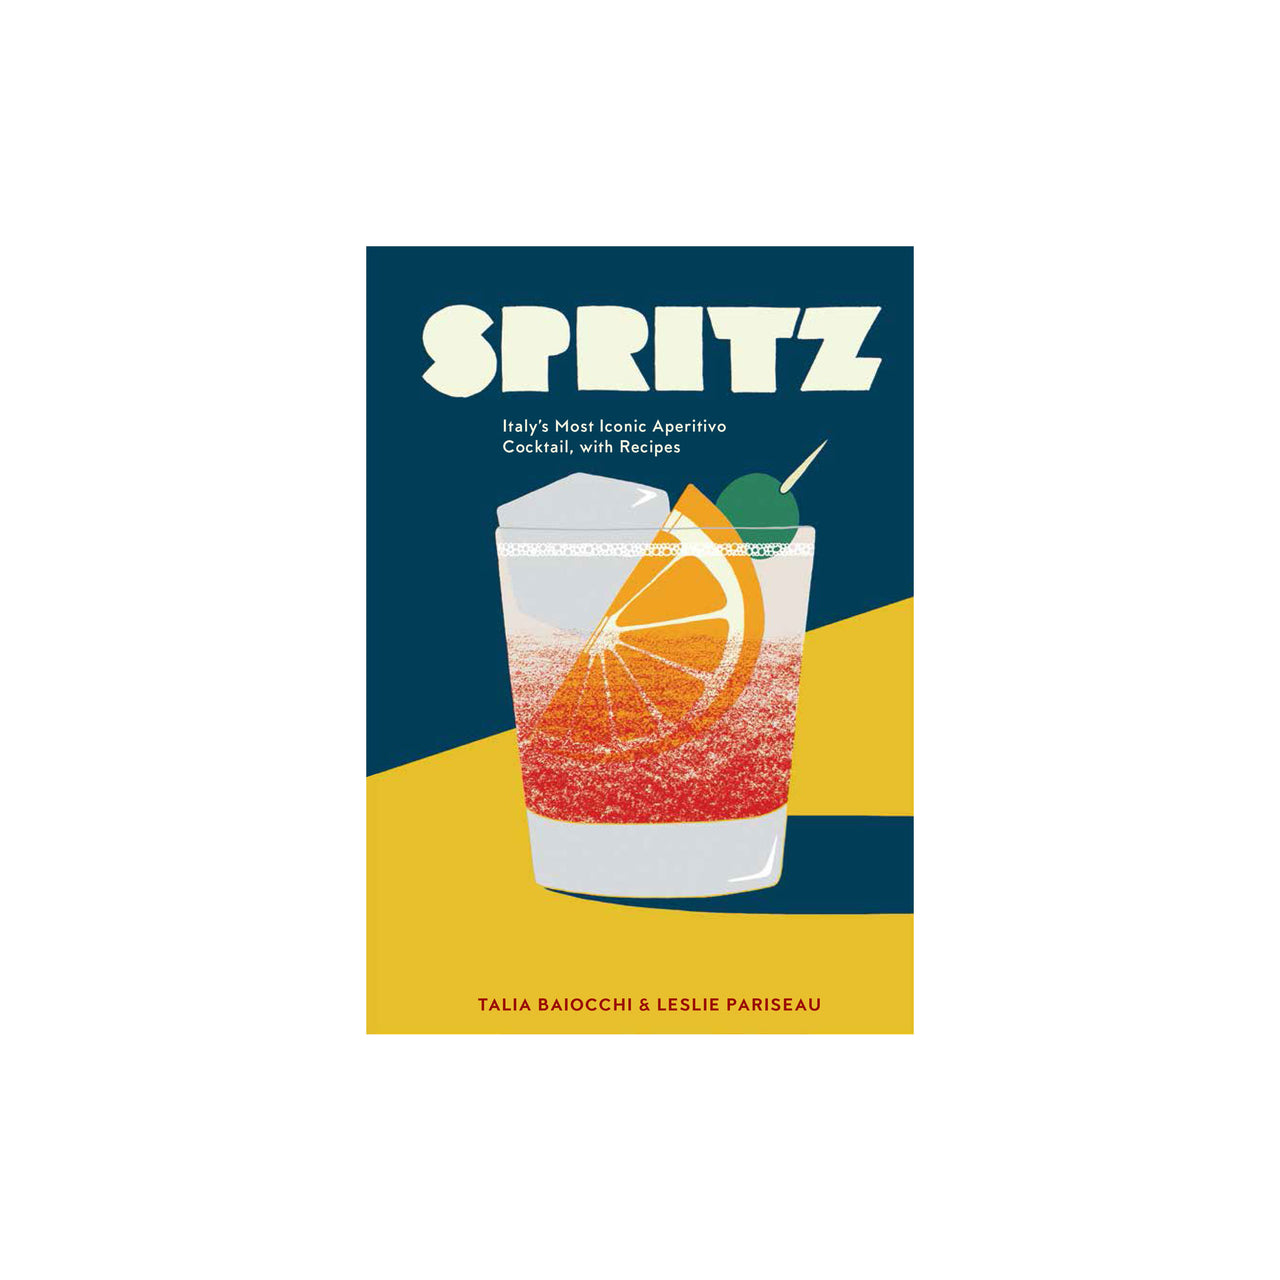 Spritz: Italy's Most Iconic Aperitivo Cocktail, with Recipes